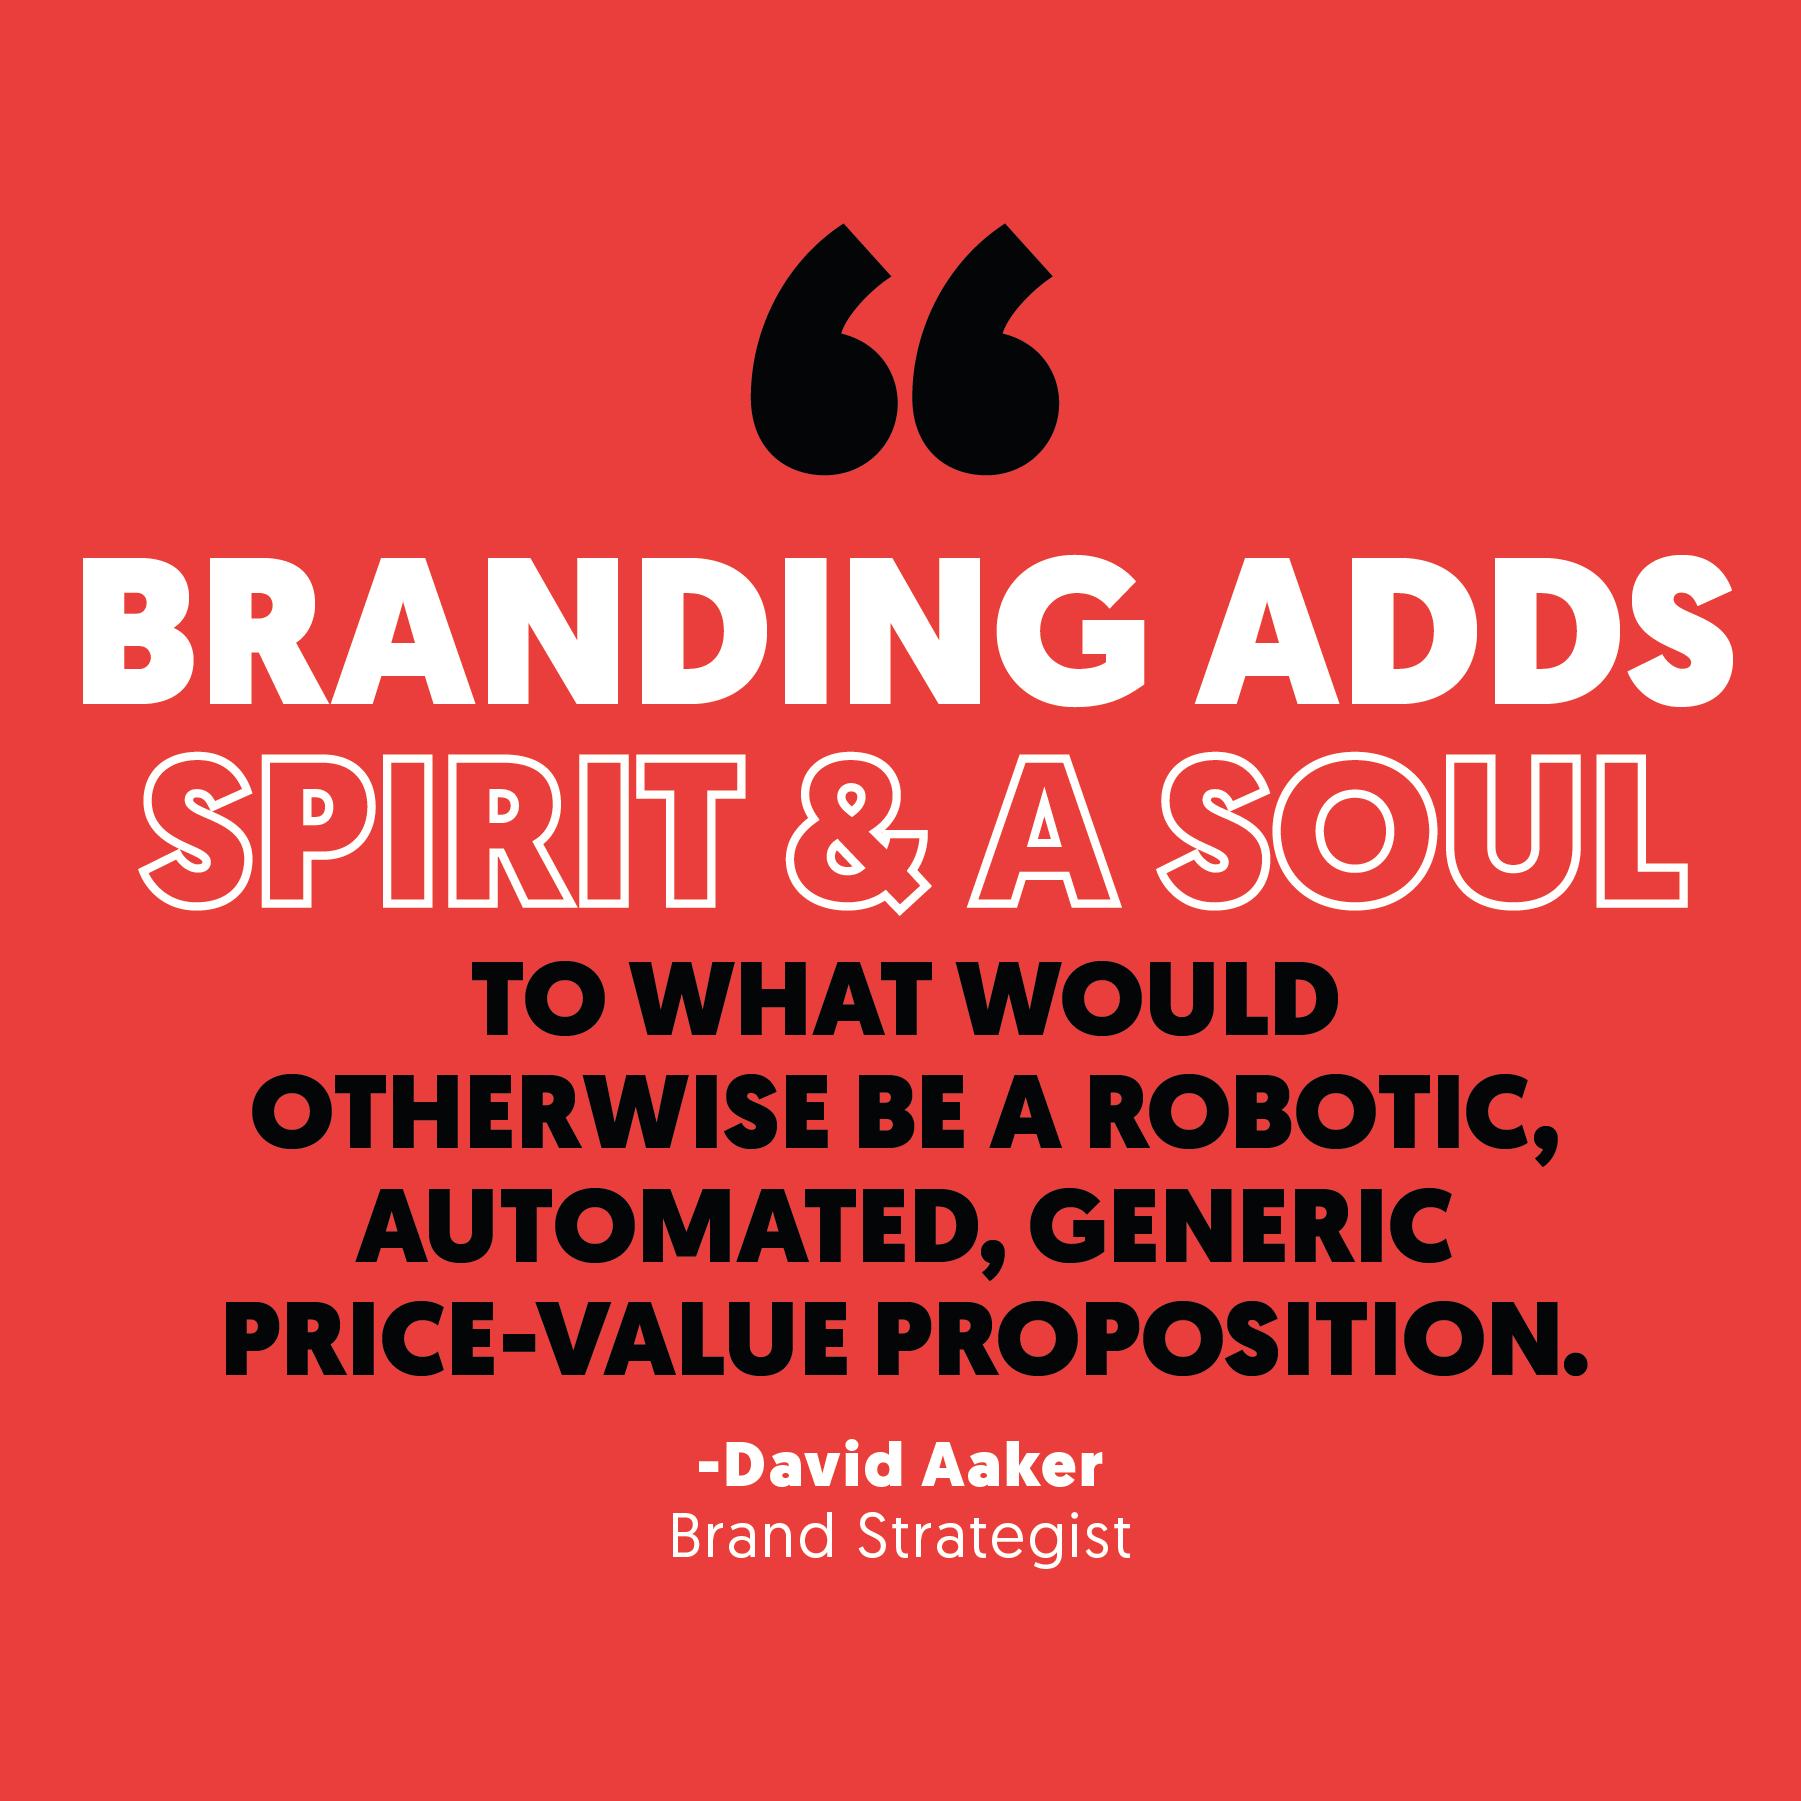 """Branding adds spirit and a soul to what would otherwise be a robotic, automated, generic price-value proposition."" - David Aker, Brand Strategist"